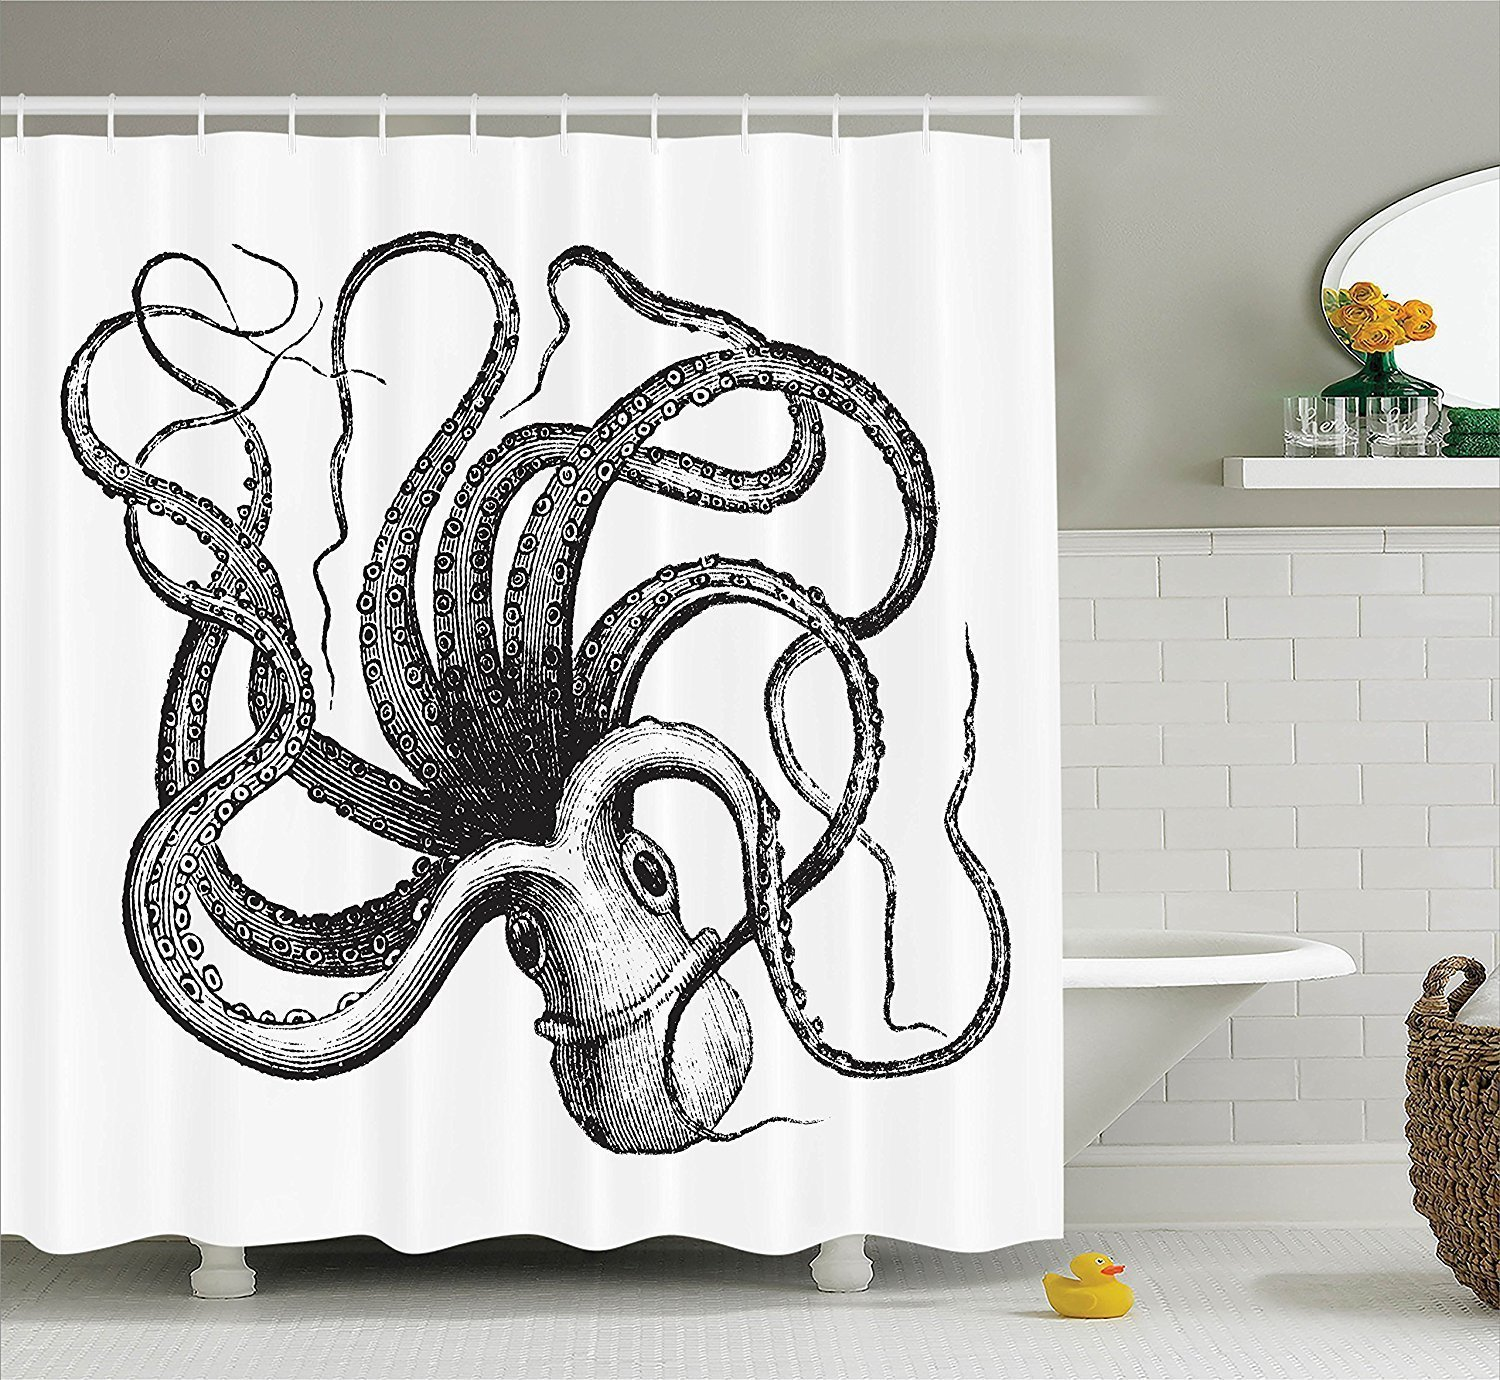 SUN-Shine Custom Sealife Sea Monster Octopus Kraken with Tentacles Nautical Decor Collection Fabric Shower Curtain with Hooks 3